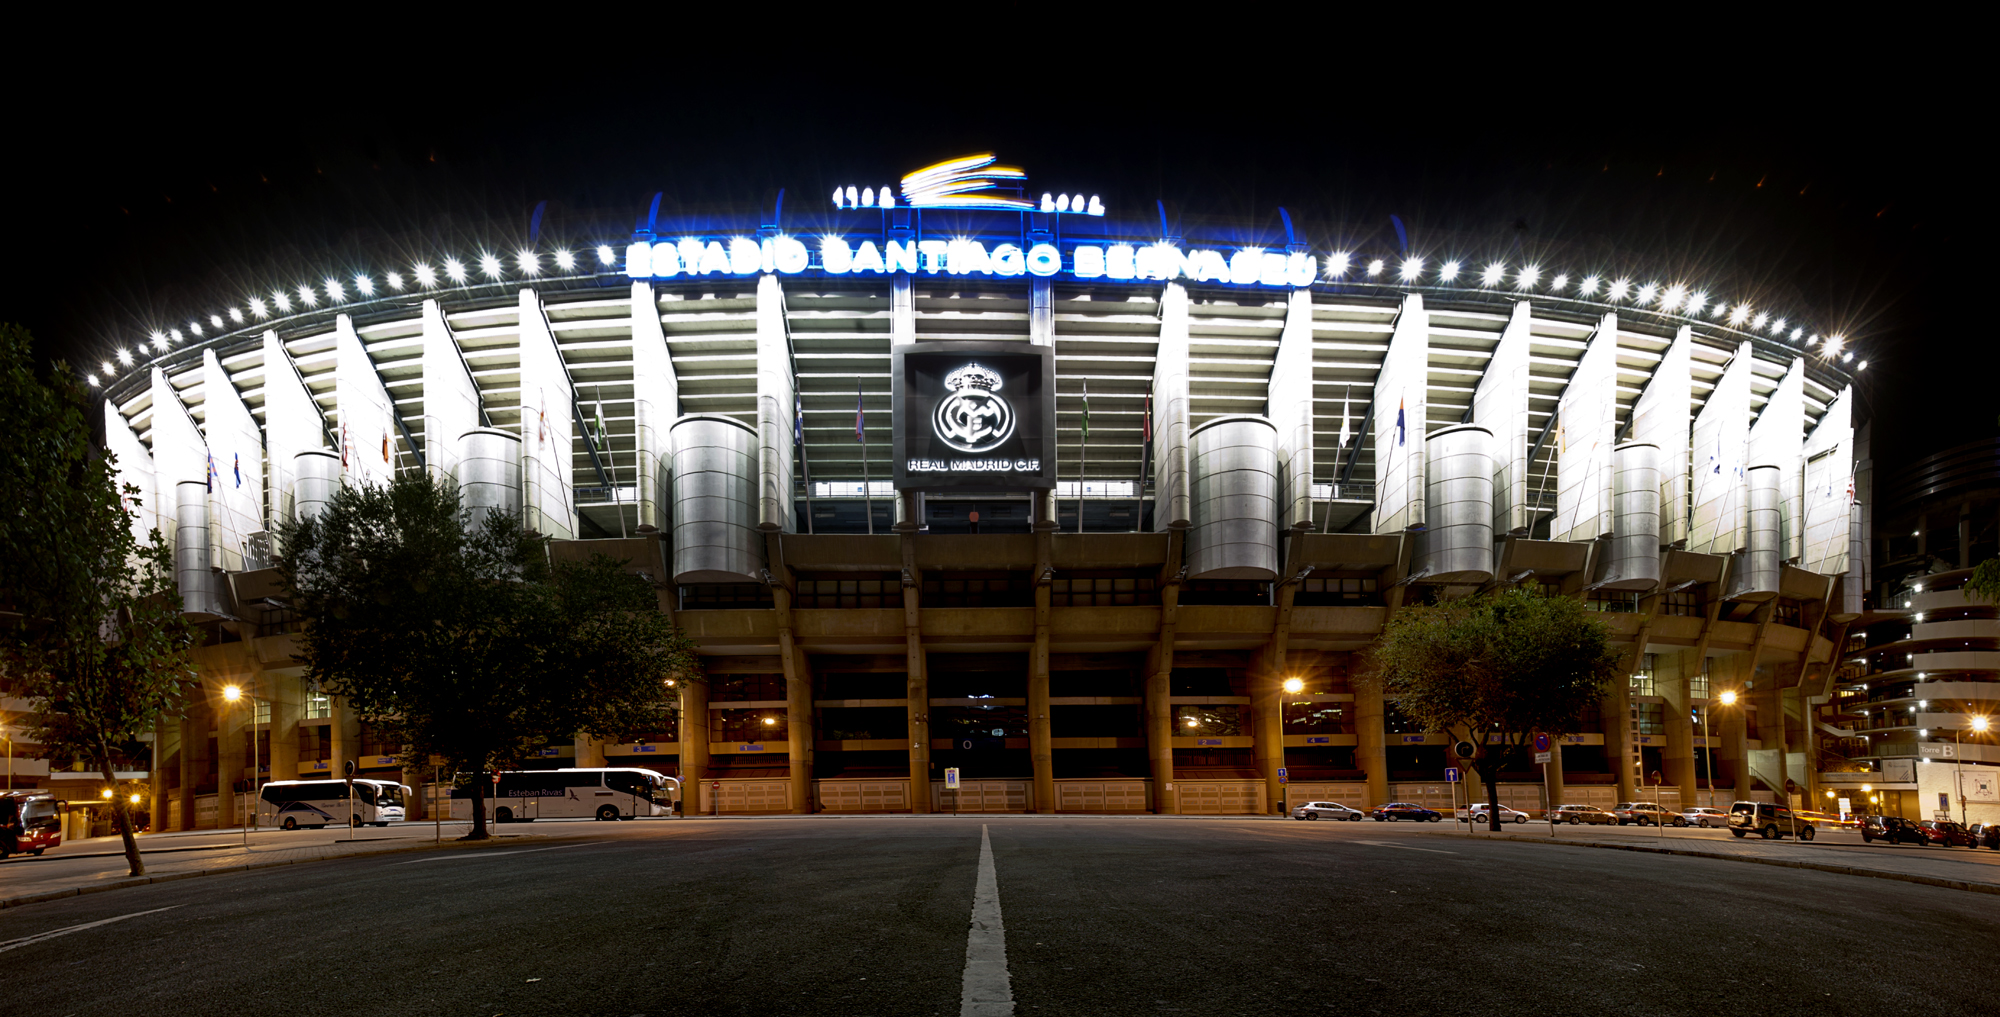 Real Madrid is upgrading with Cisco Connected Stadium Wi-Fi and StadiumVision solutions